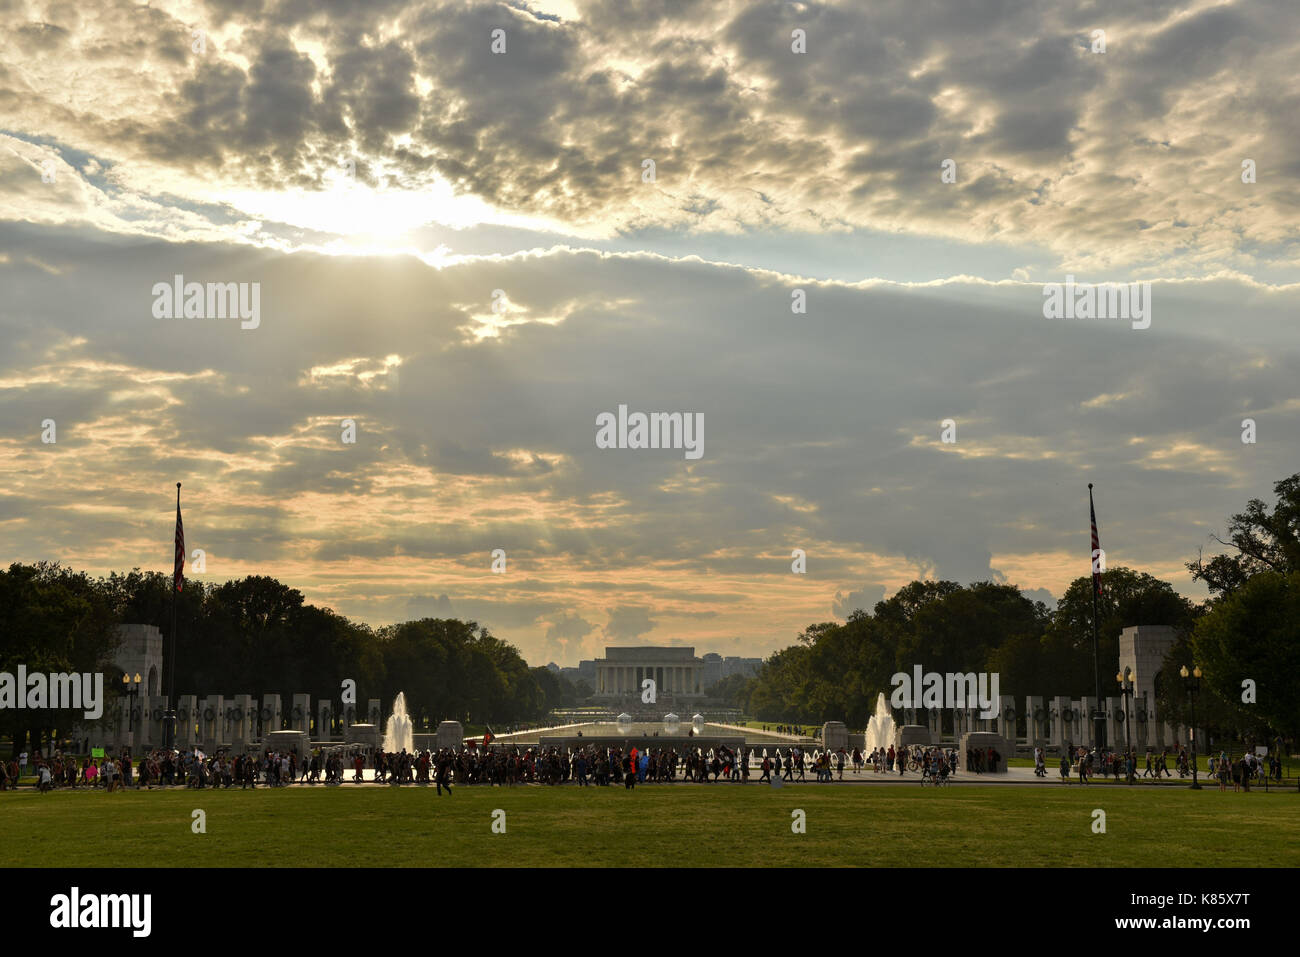 Washington, District of Columbia, USA. 16th Sep, 2017. Juggalo participants march on the National Mall. Insane Clown Stock Photo